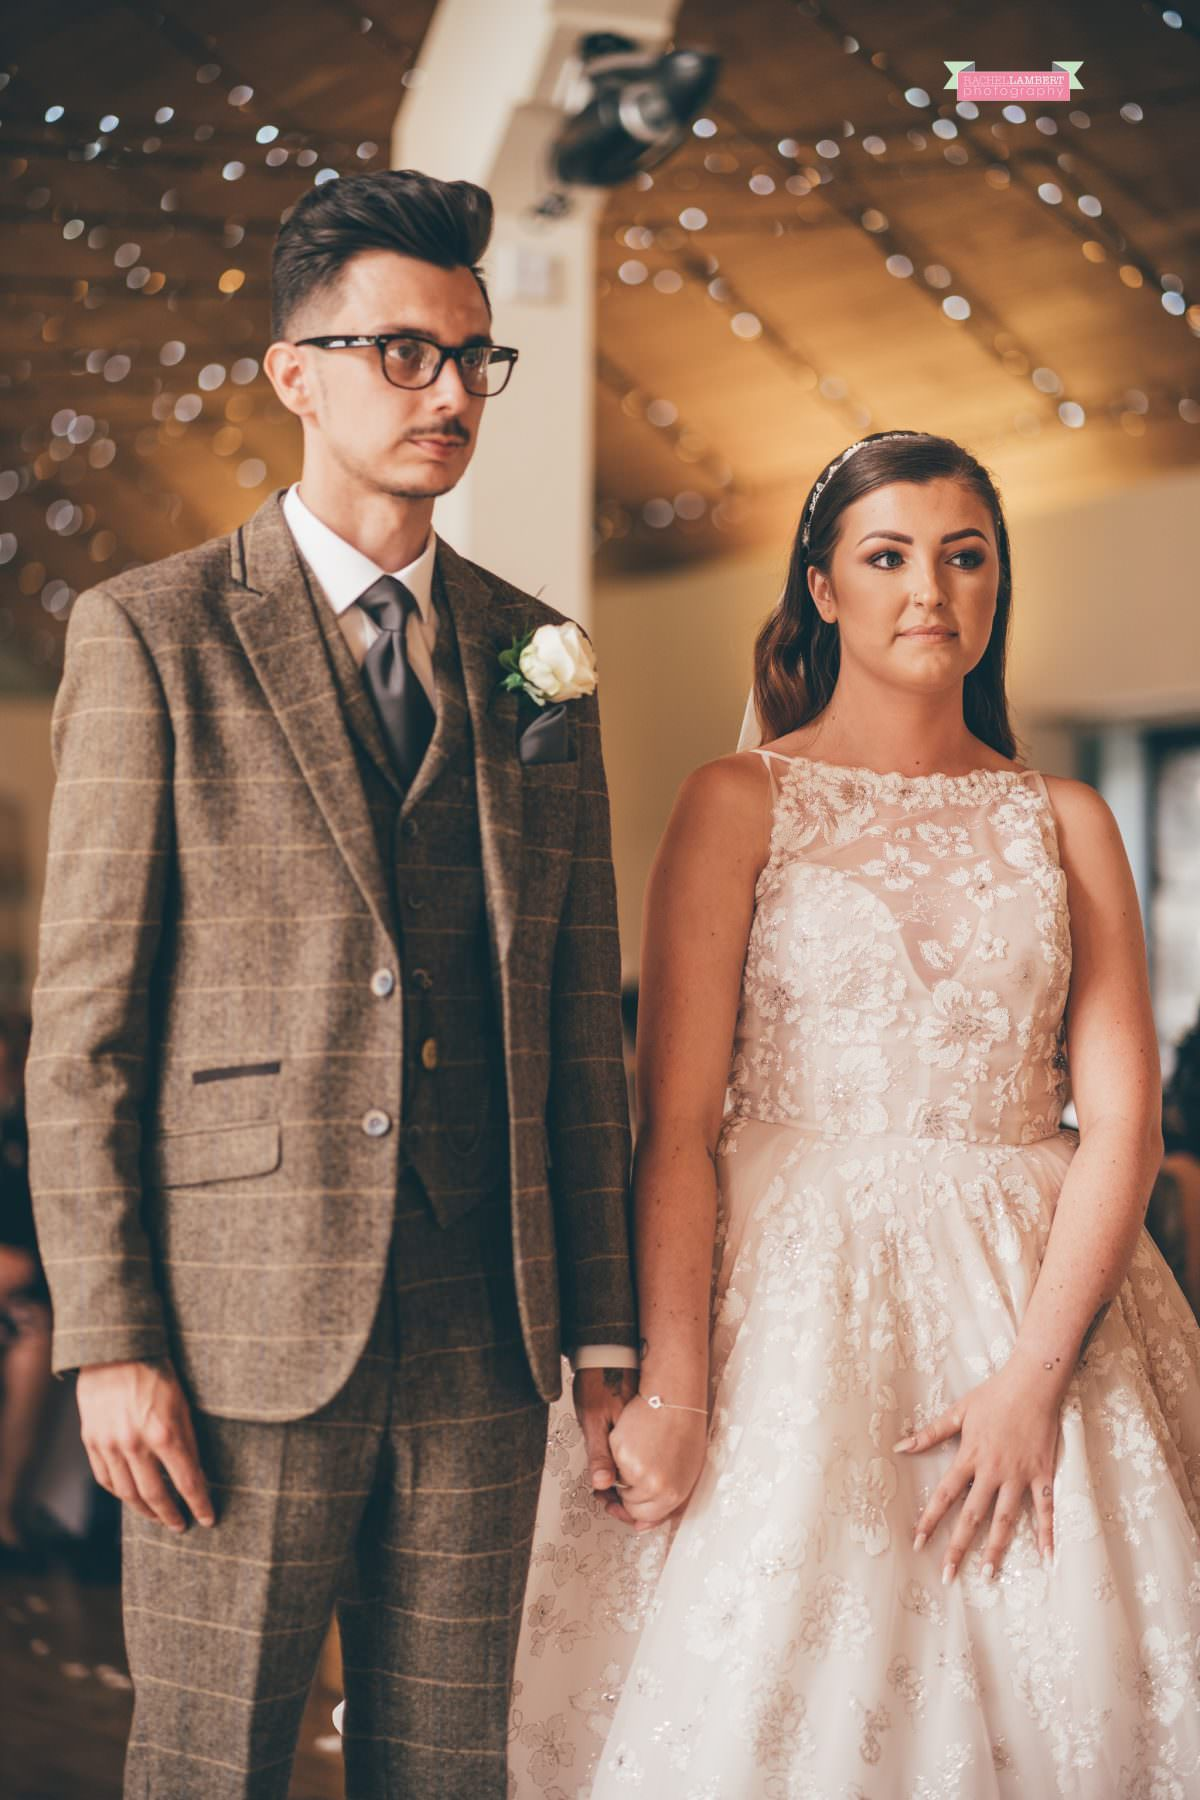 hayley paige bridal gown canada lake lodge bride and groom